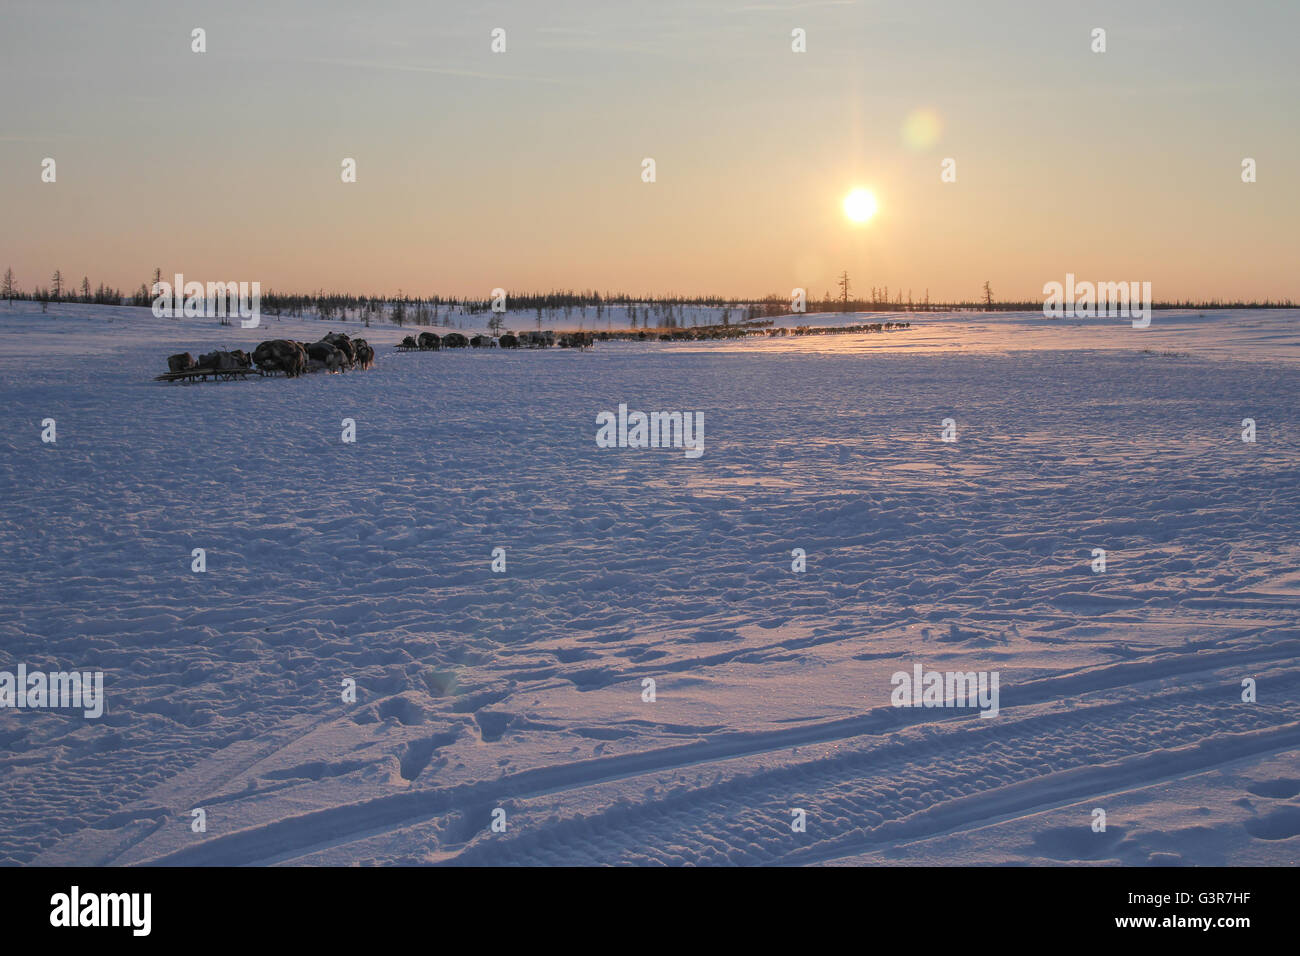 Nenets reindeer herders wander to place new settlements at sunset. - Stock Image